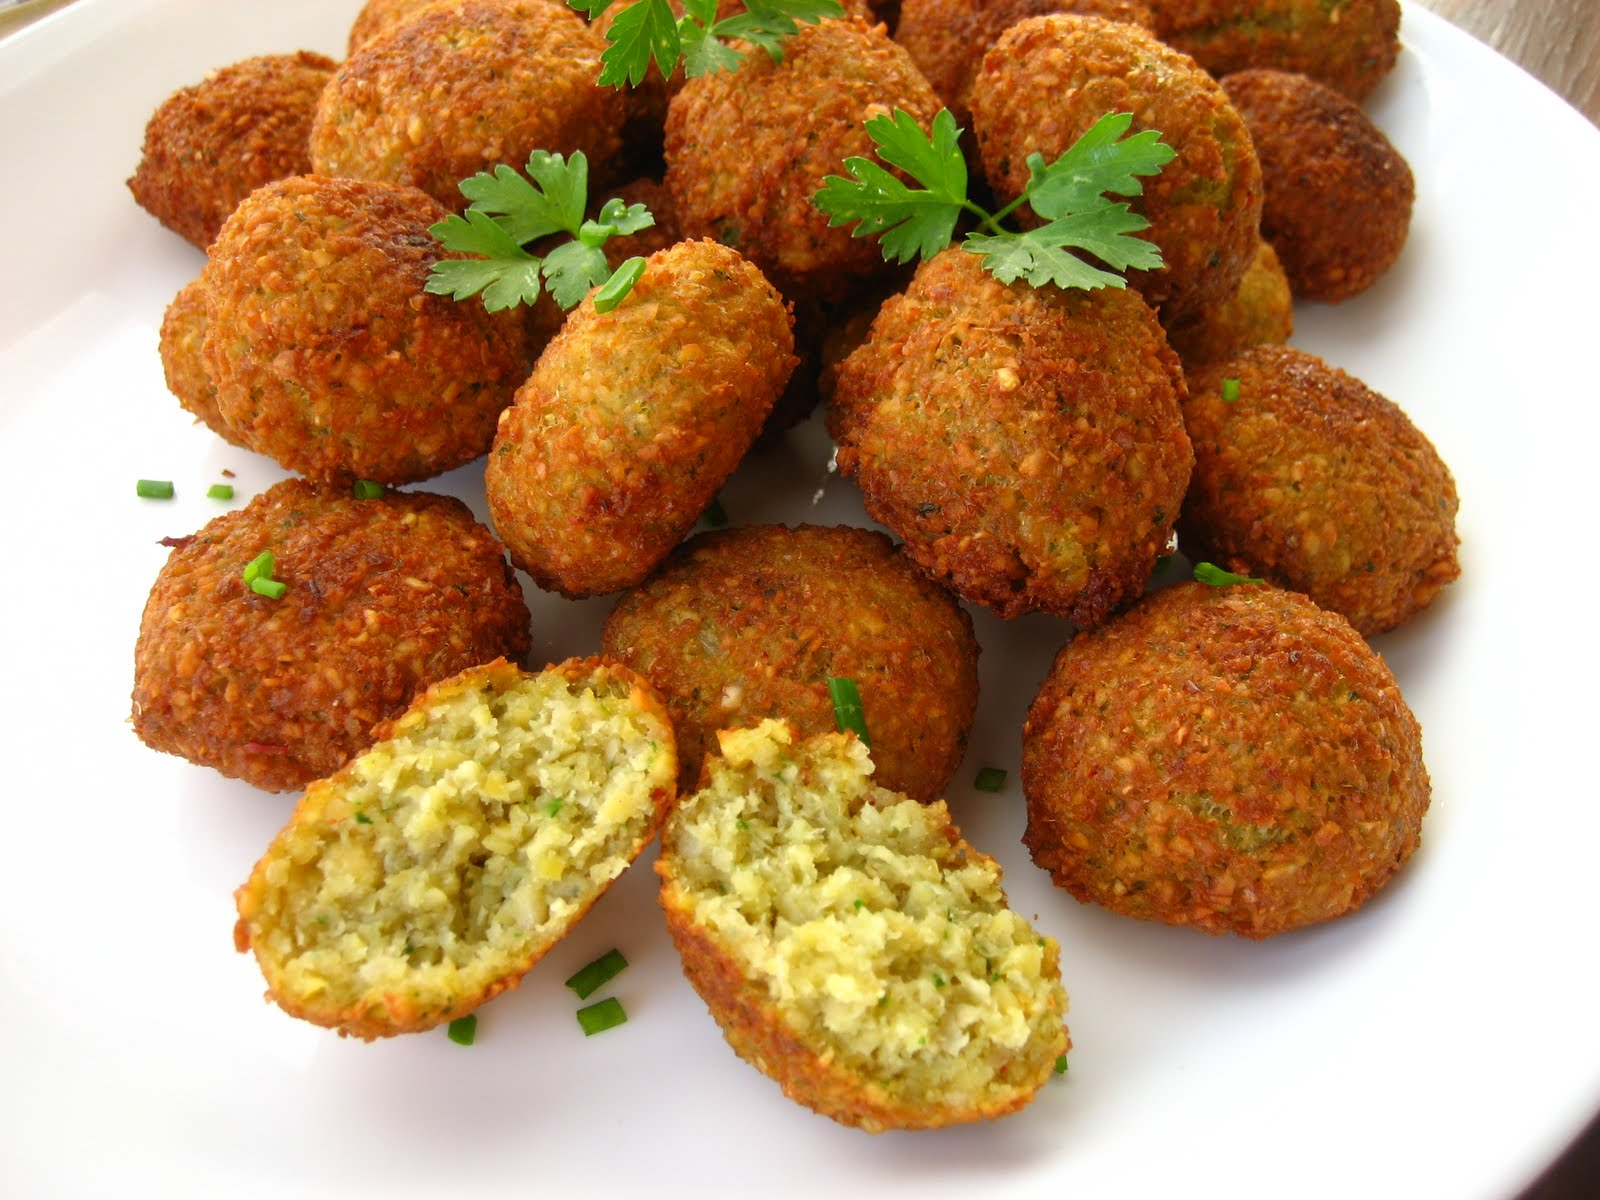 Home Cooking In Montana: Israeli Falafel...Gluten-Free